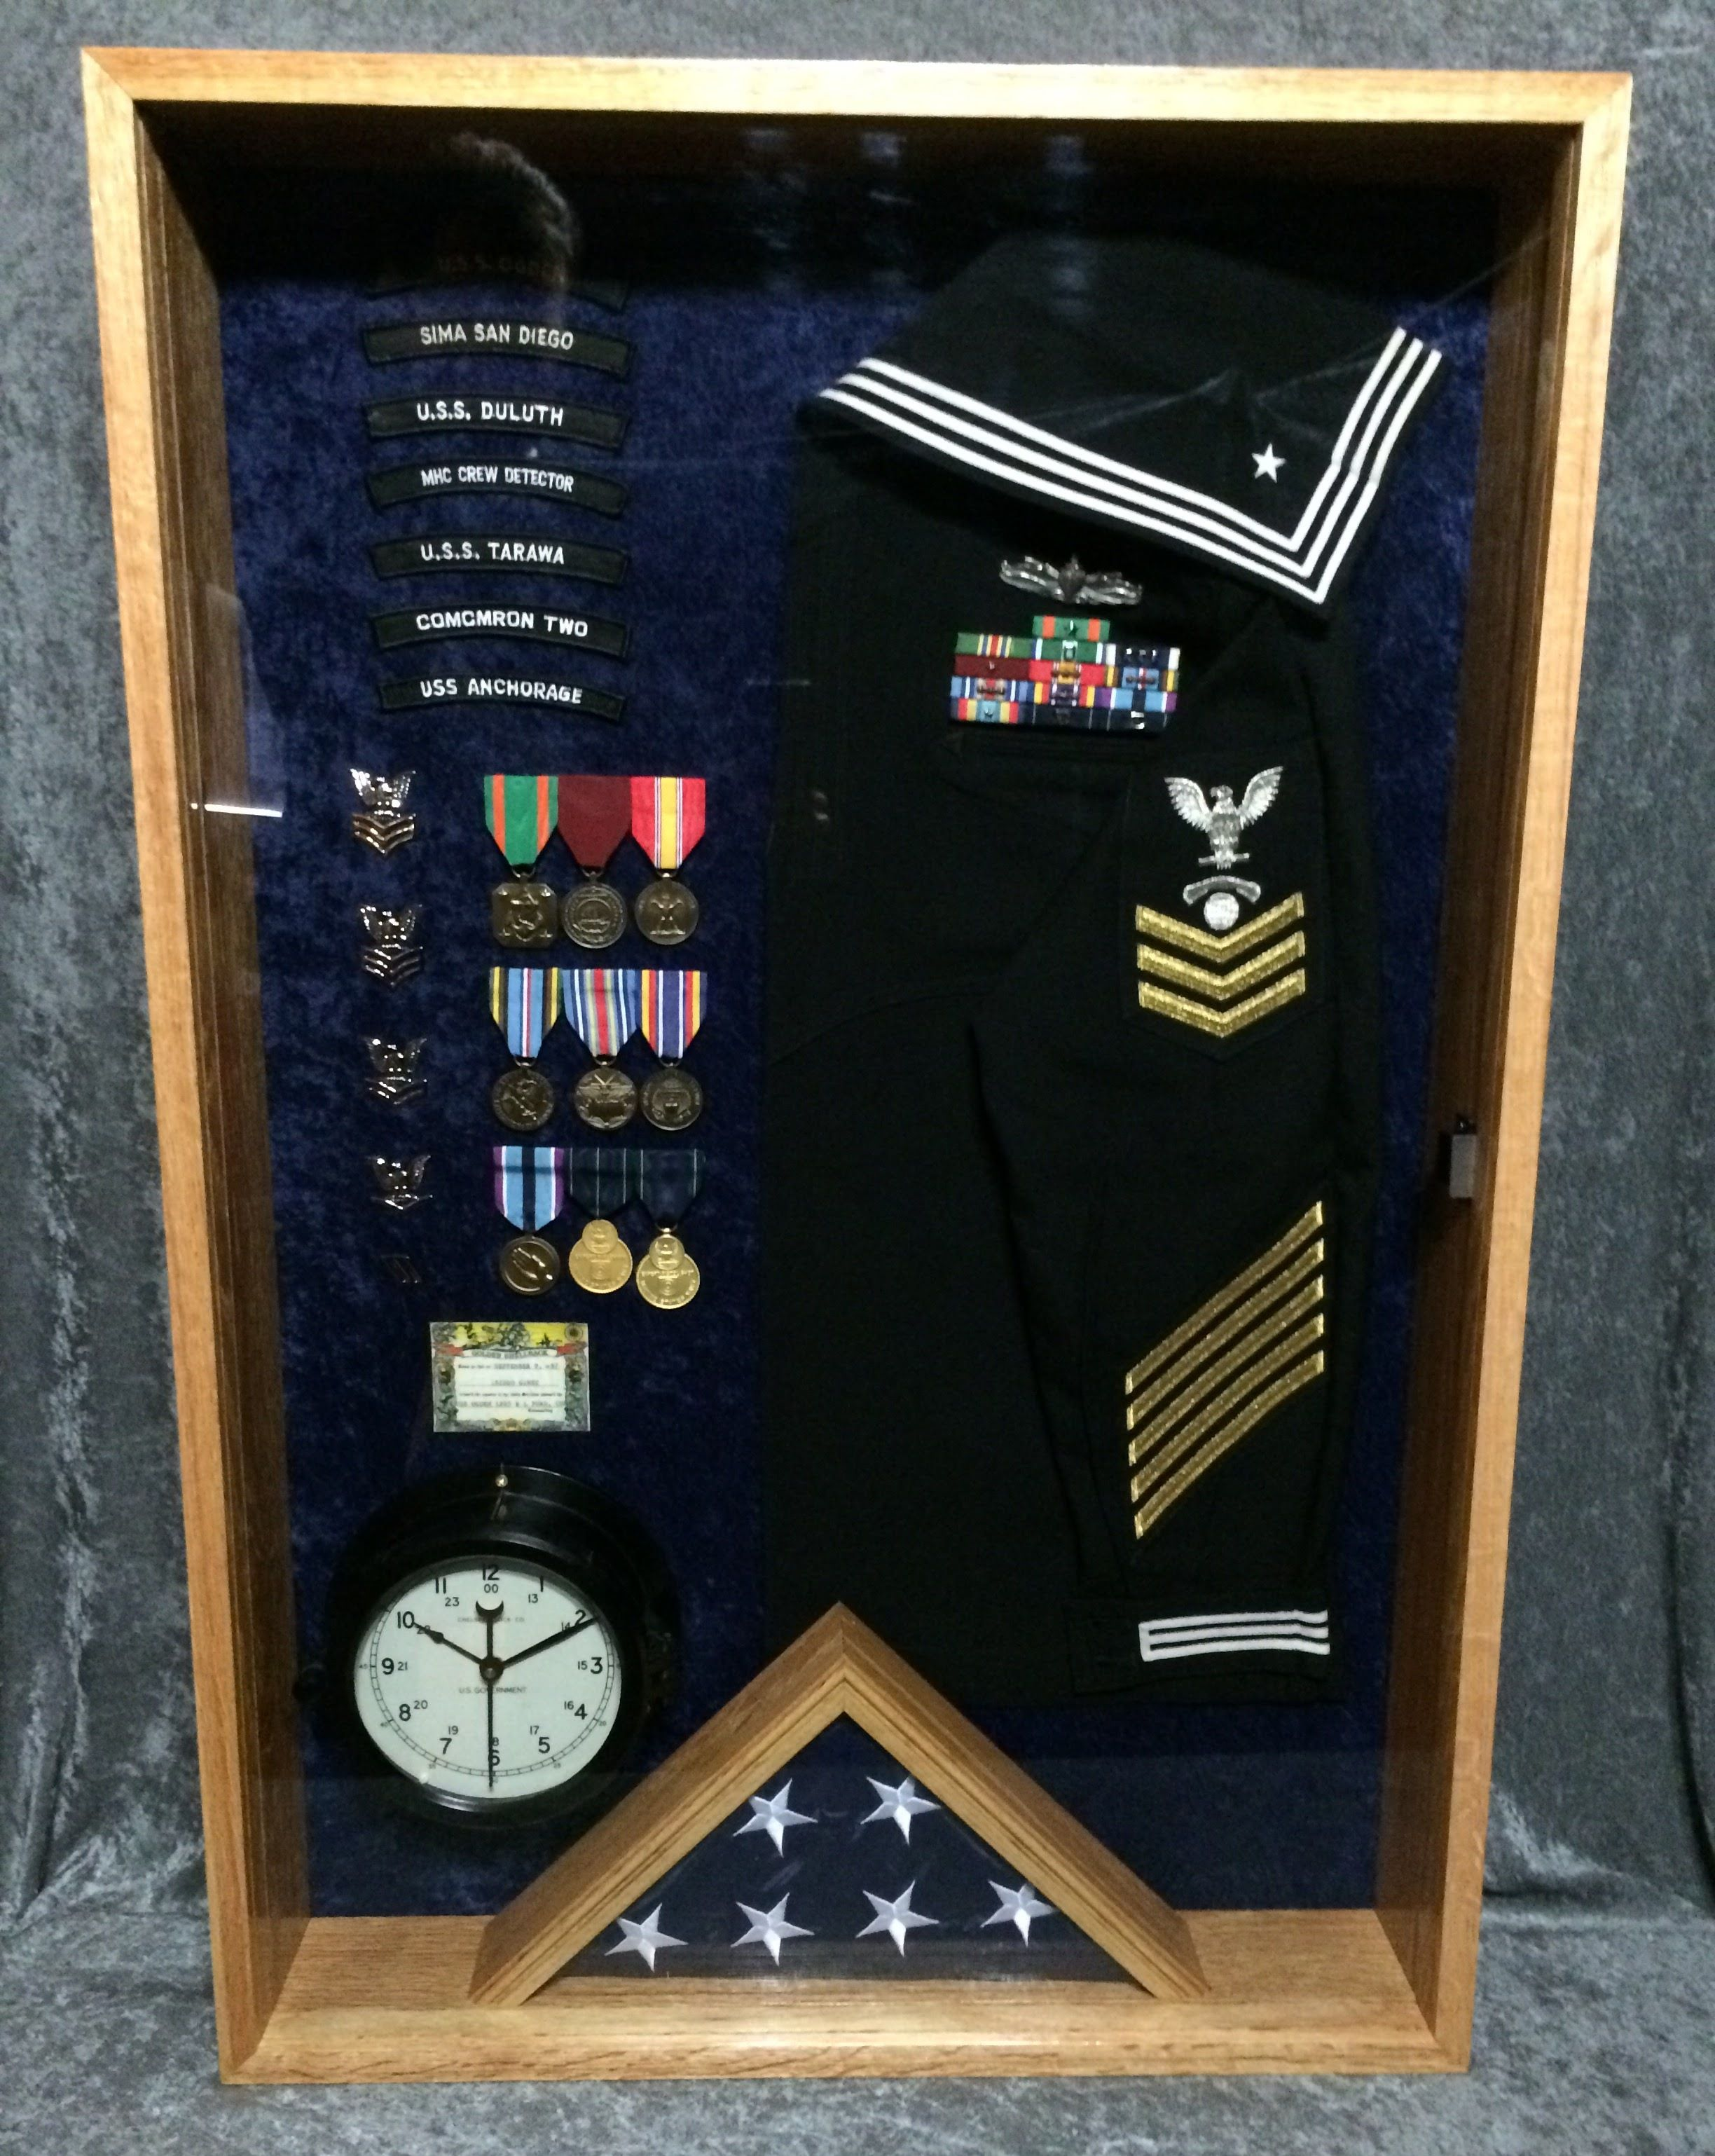 Best Shadow Box Ideas Pictures, Decor, and Remodel | Medallones ...